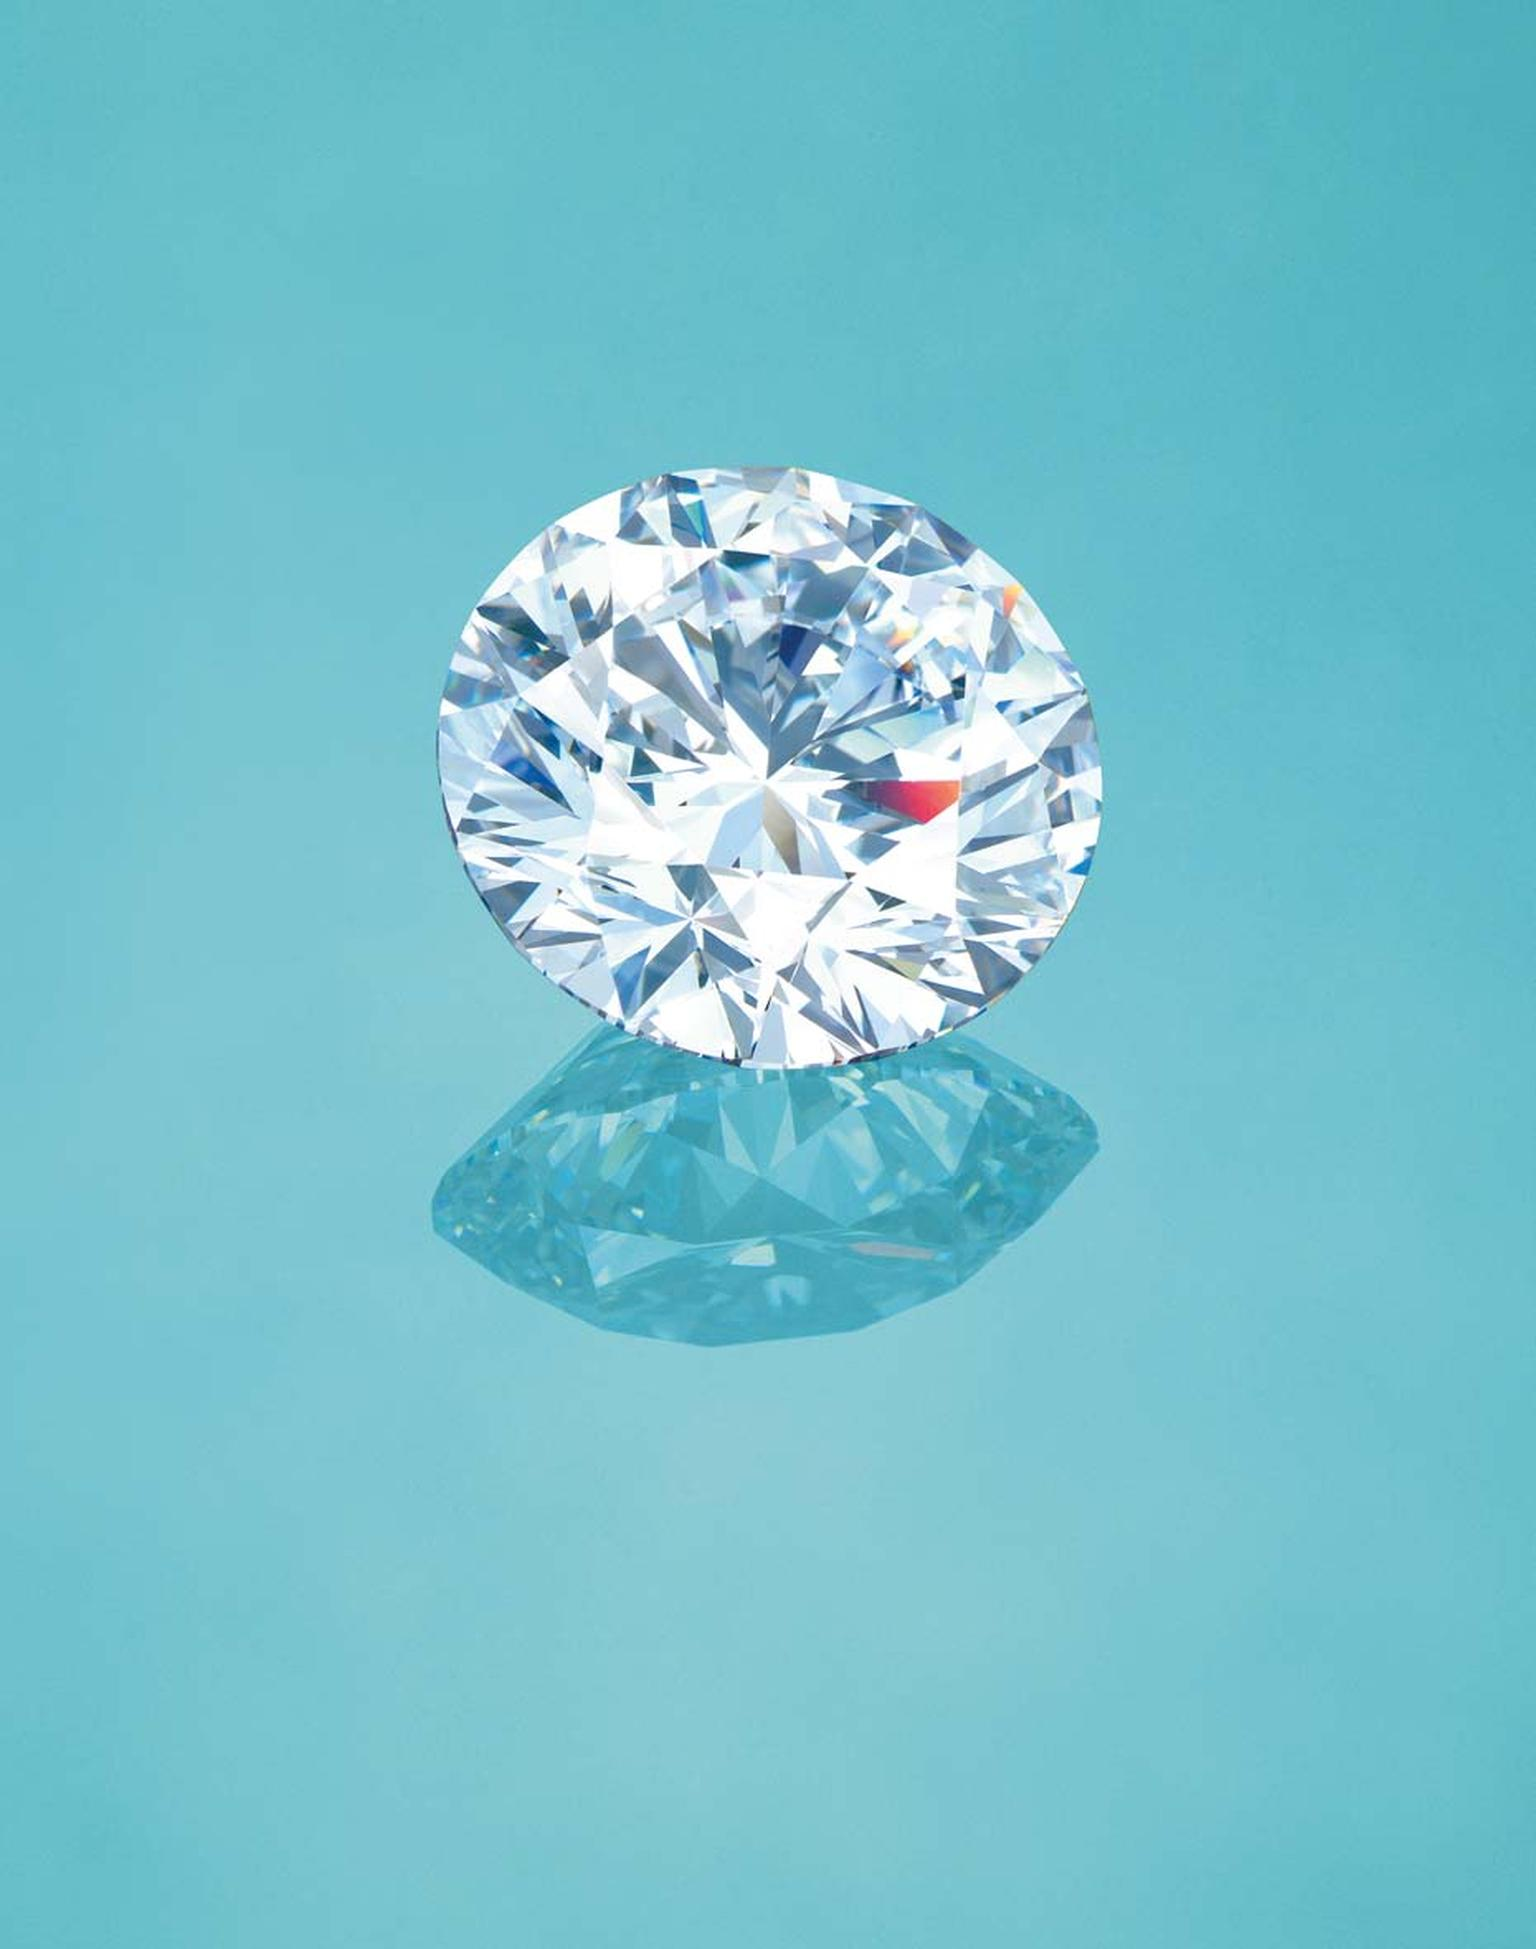 Christie's Hong Kong unmounted brilliant-cut diamond graded as 'D Flawless,' the highest accolade for colour and clarity with no internal or external imperfections. (estimate: US$4,000,000-6,500,000).